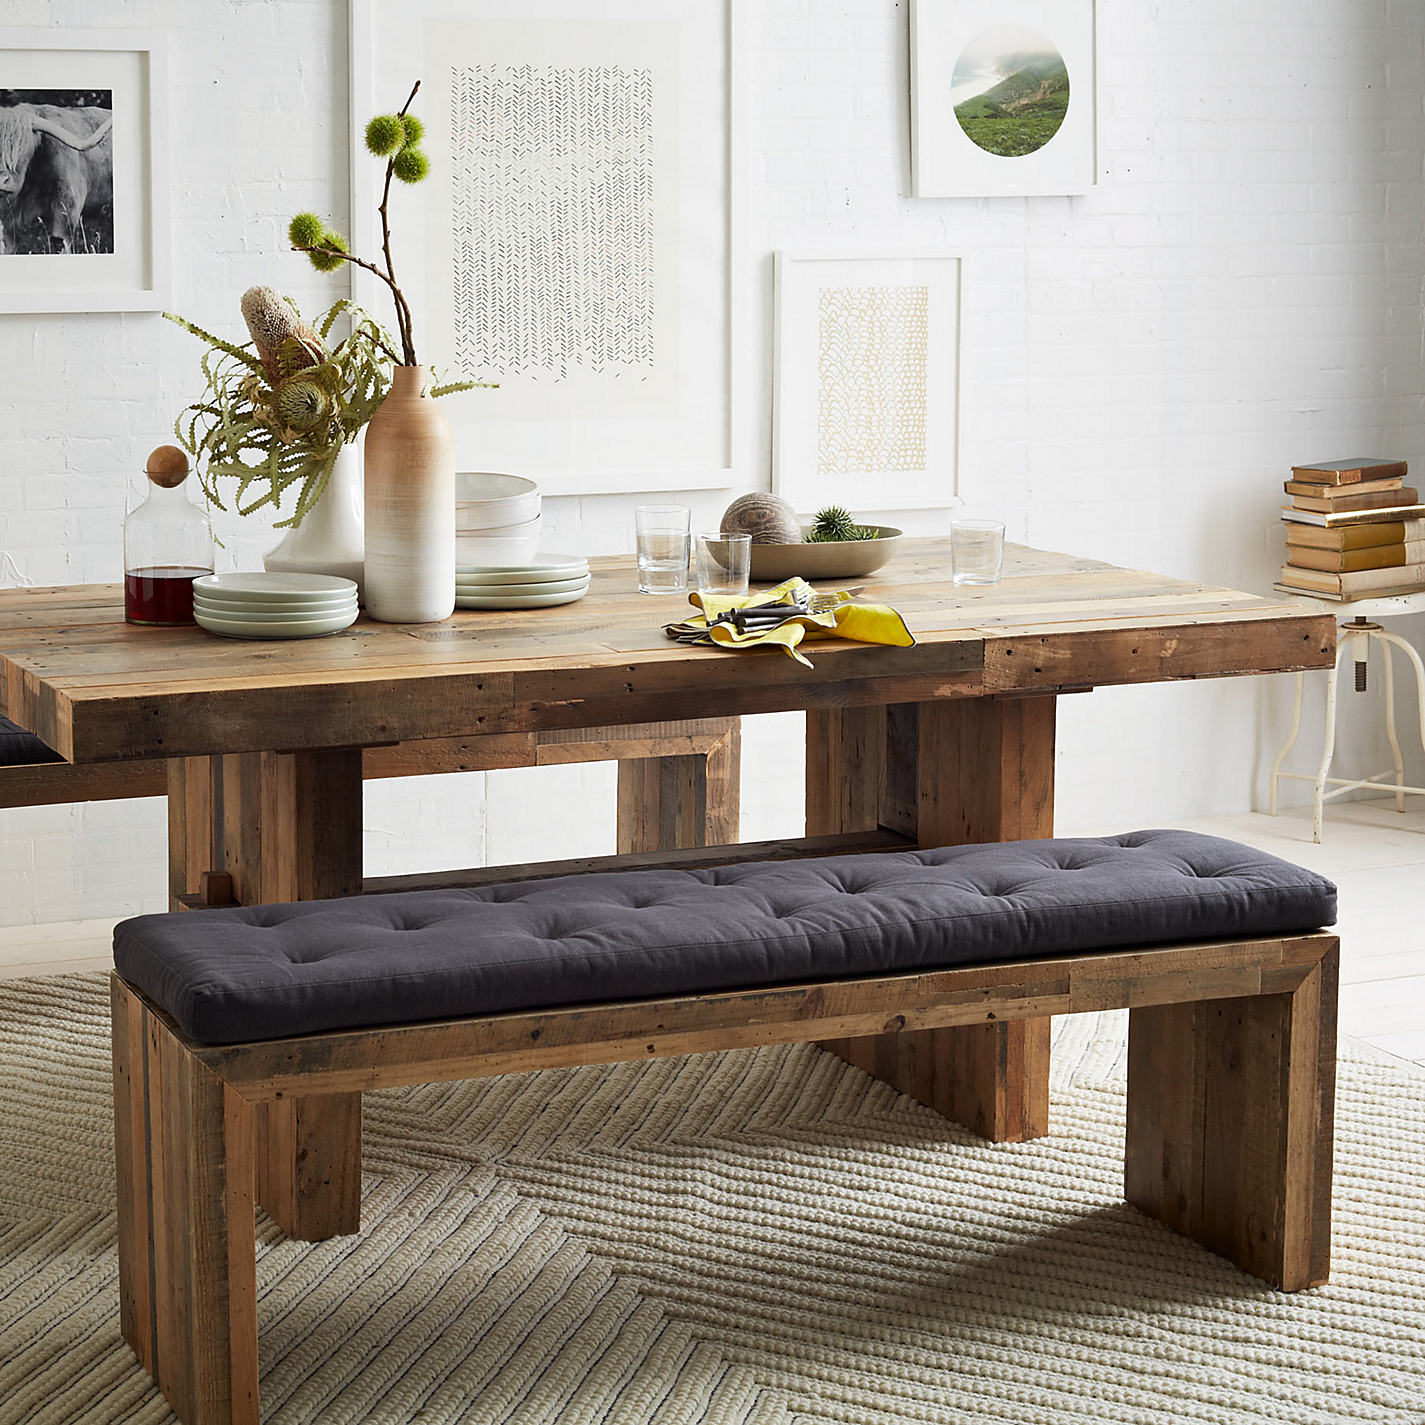 ... Buy west elm Emmerson 6 Seater Dining Table Online at johnlewis.com ...